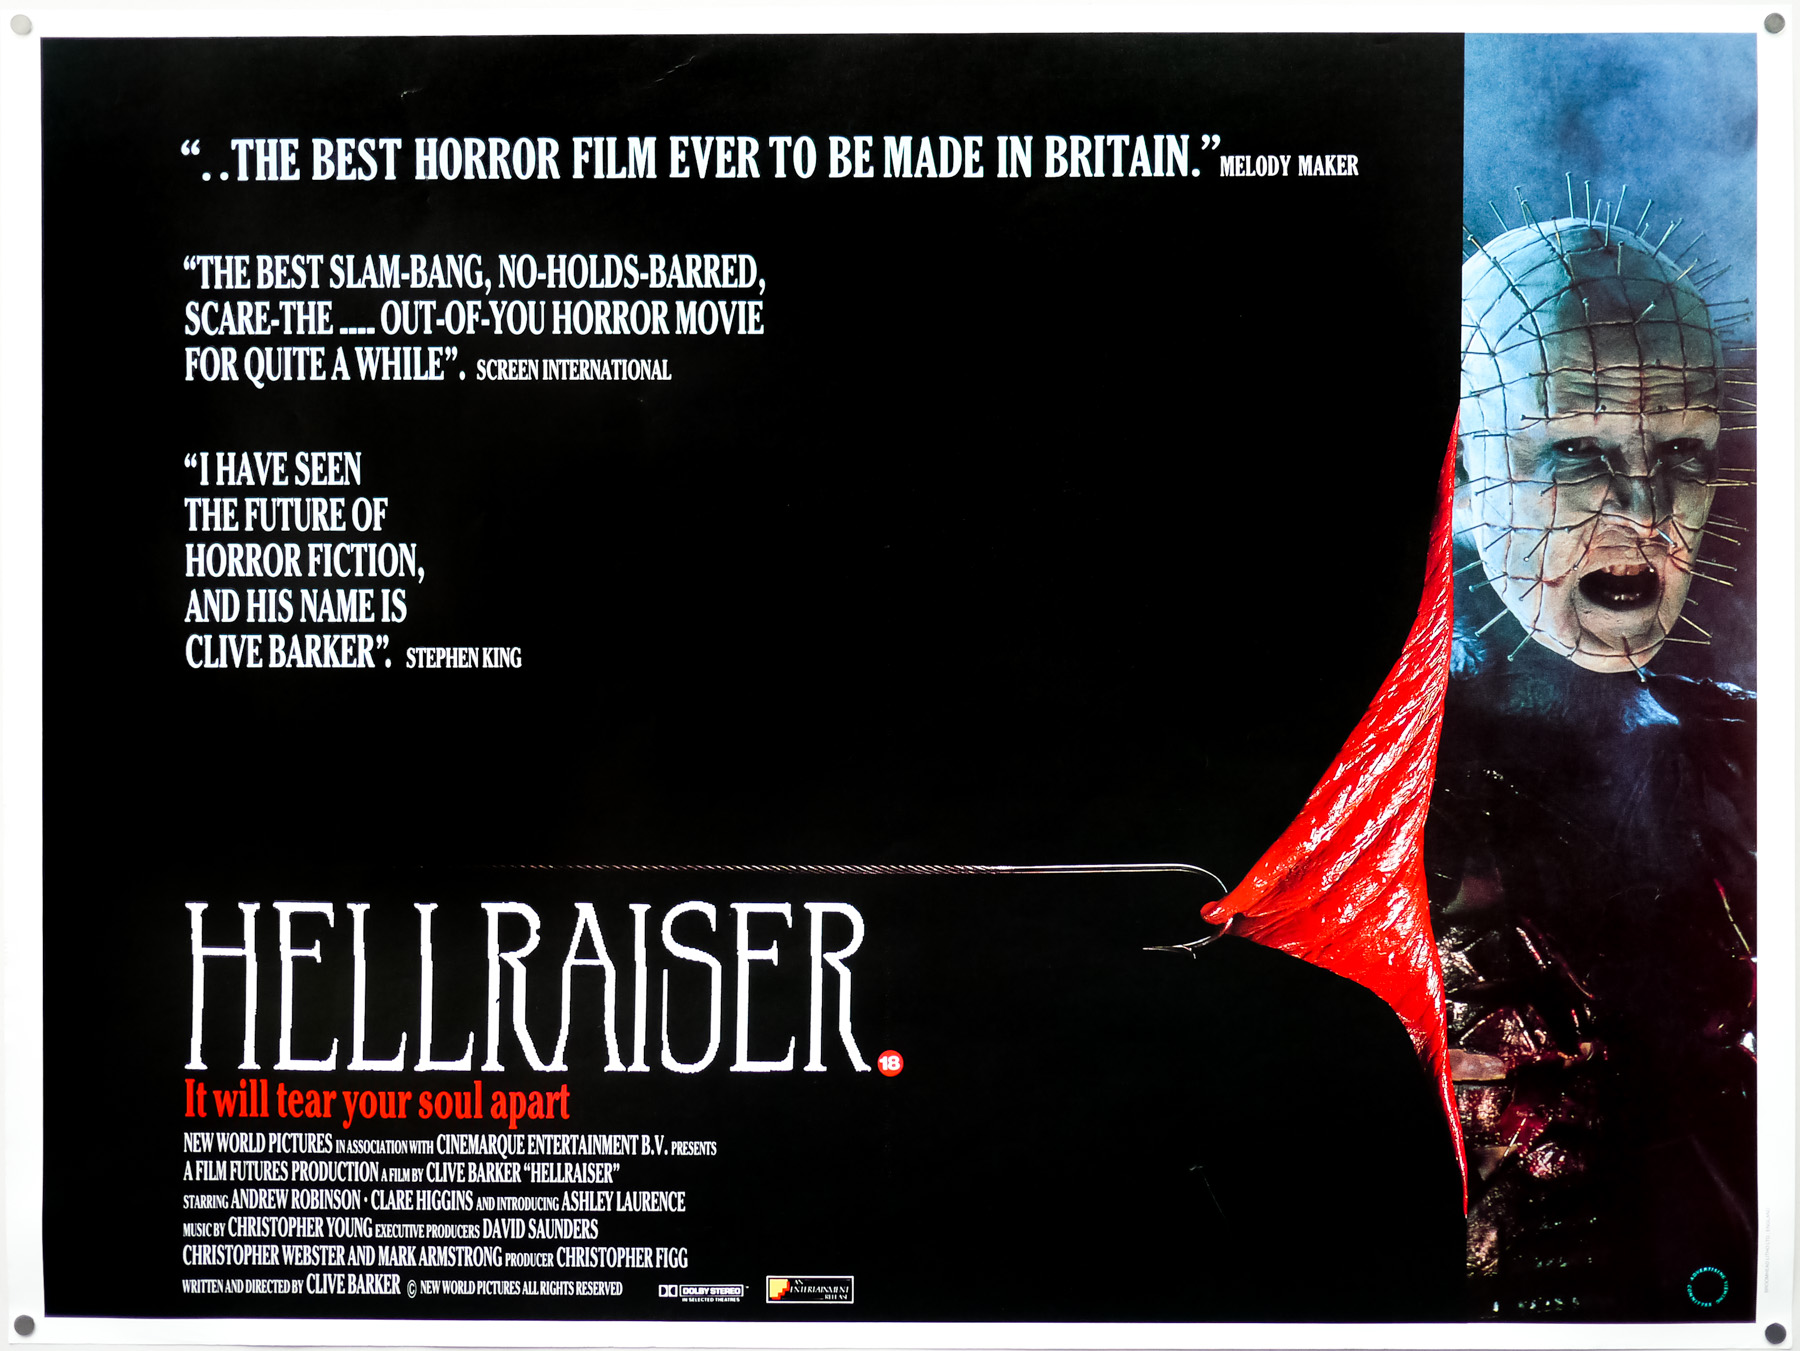 Hellraiser (1987) at Penarth Pier Pavilion - Cinema event tickets ...